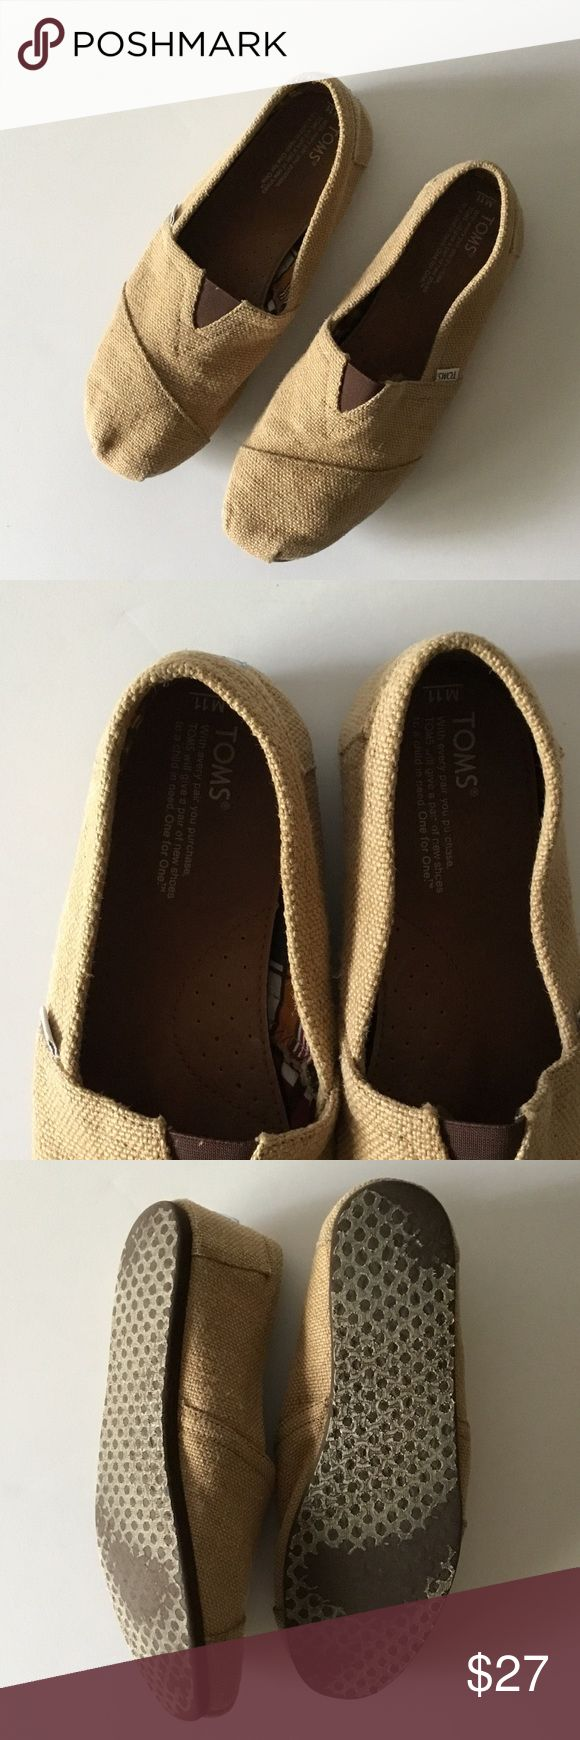 TOMS Mens Espadrilles  size 11 EUC TOMS burlap espadrilles men's in size 11. Gently used. A few wear marks in the front noted in photo. Excellent condition! TOMS Shoes Loafers & Slip-Ons